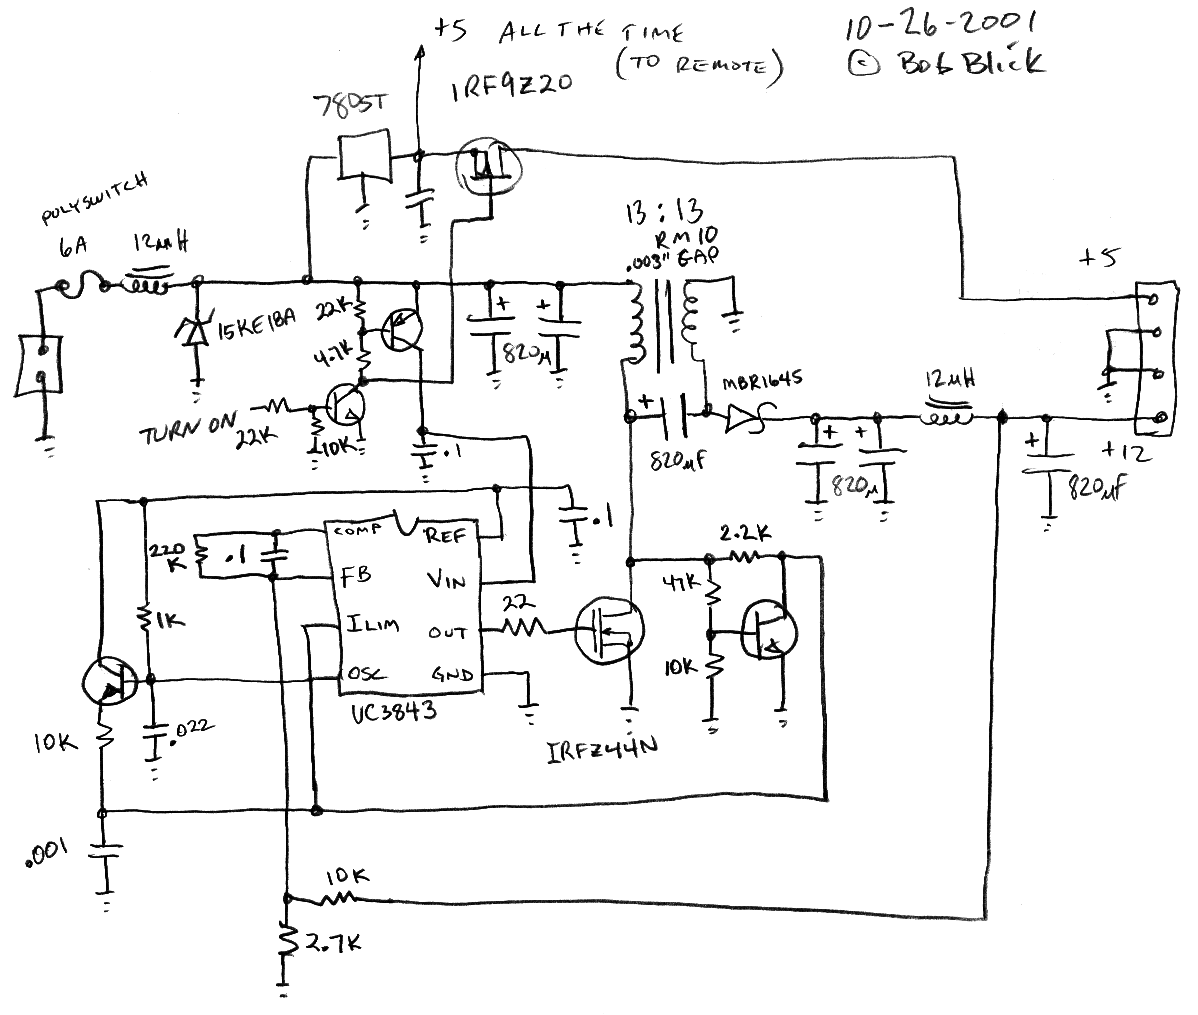 Car Psu Volt Power Supply Schematic The Blick Dc Converter Follow Link For High Res